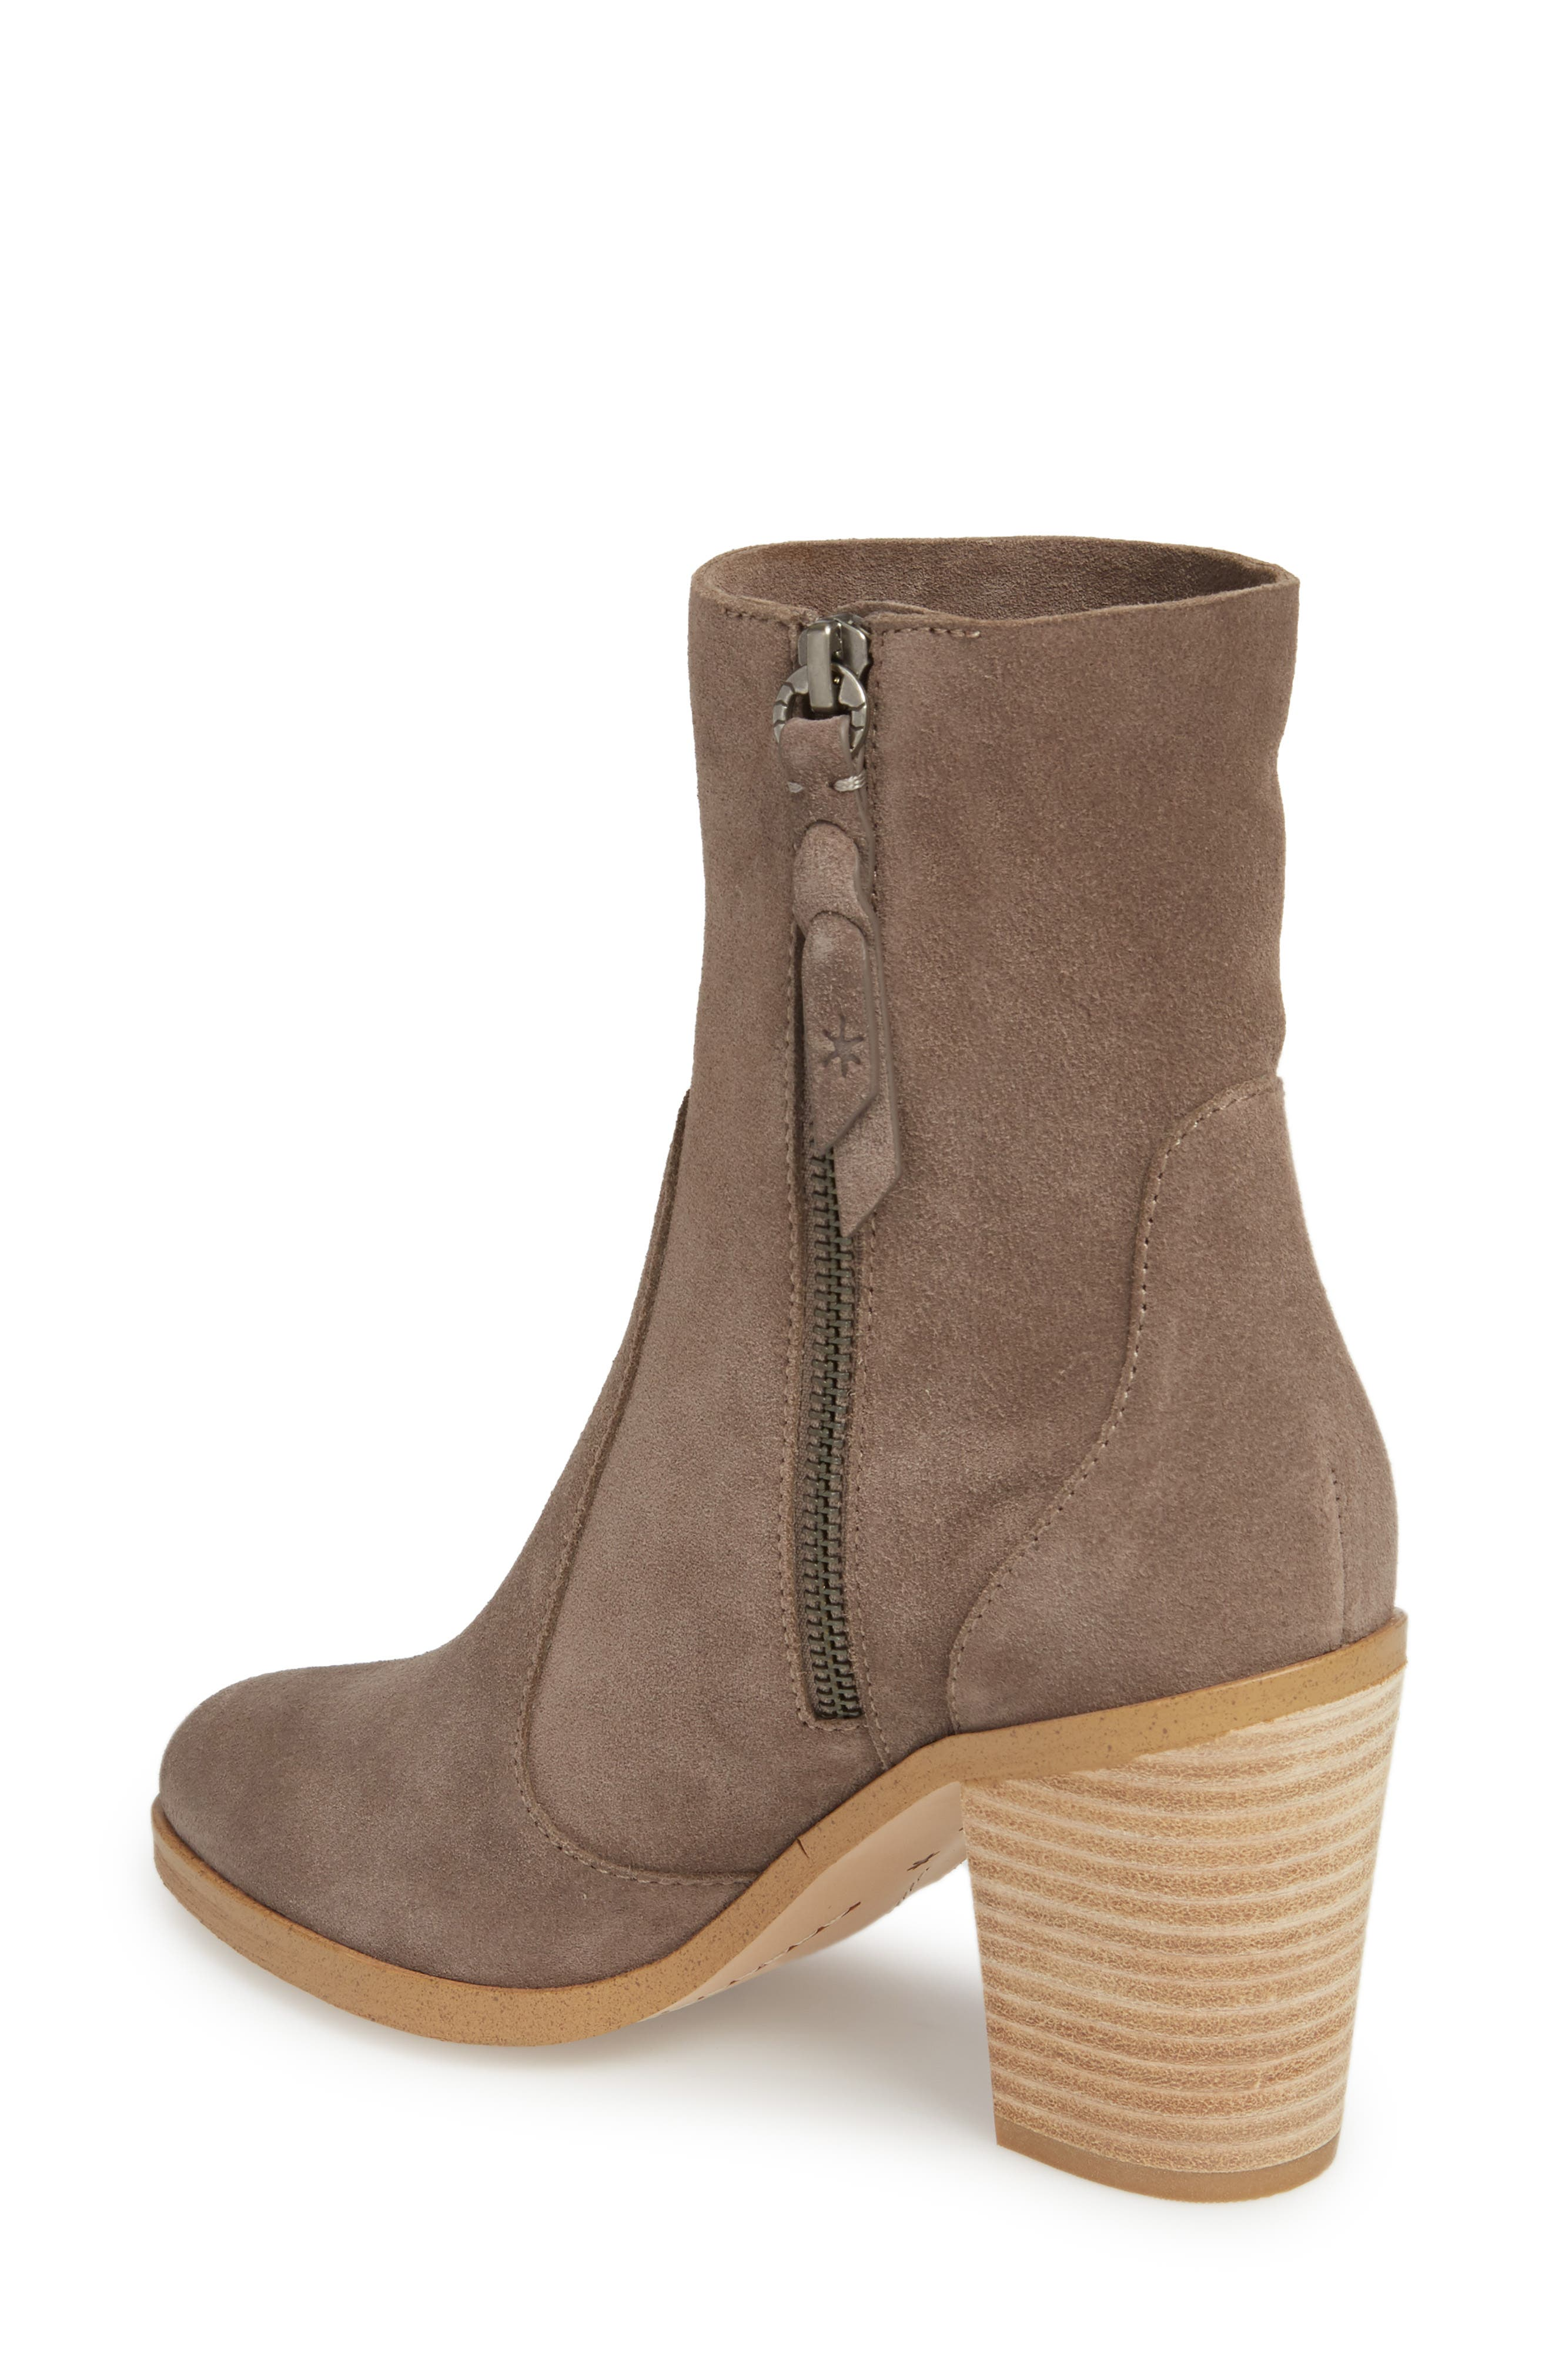 Roselyn II Almond Toe Bootie,                             Alternate thumbnail 2, color,                             029